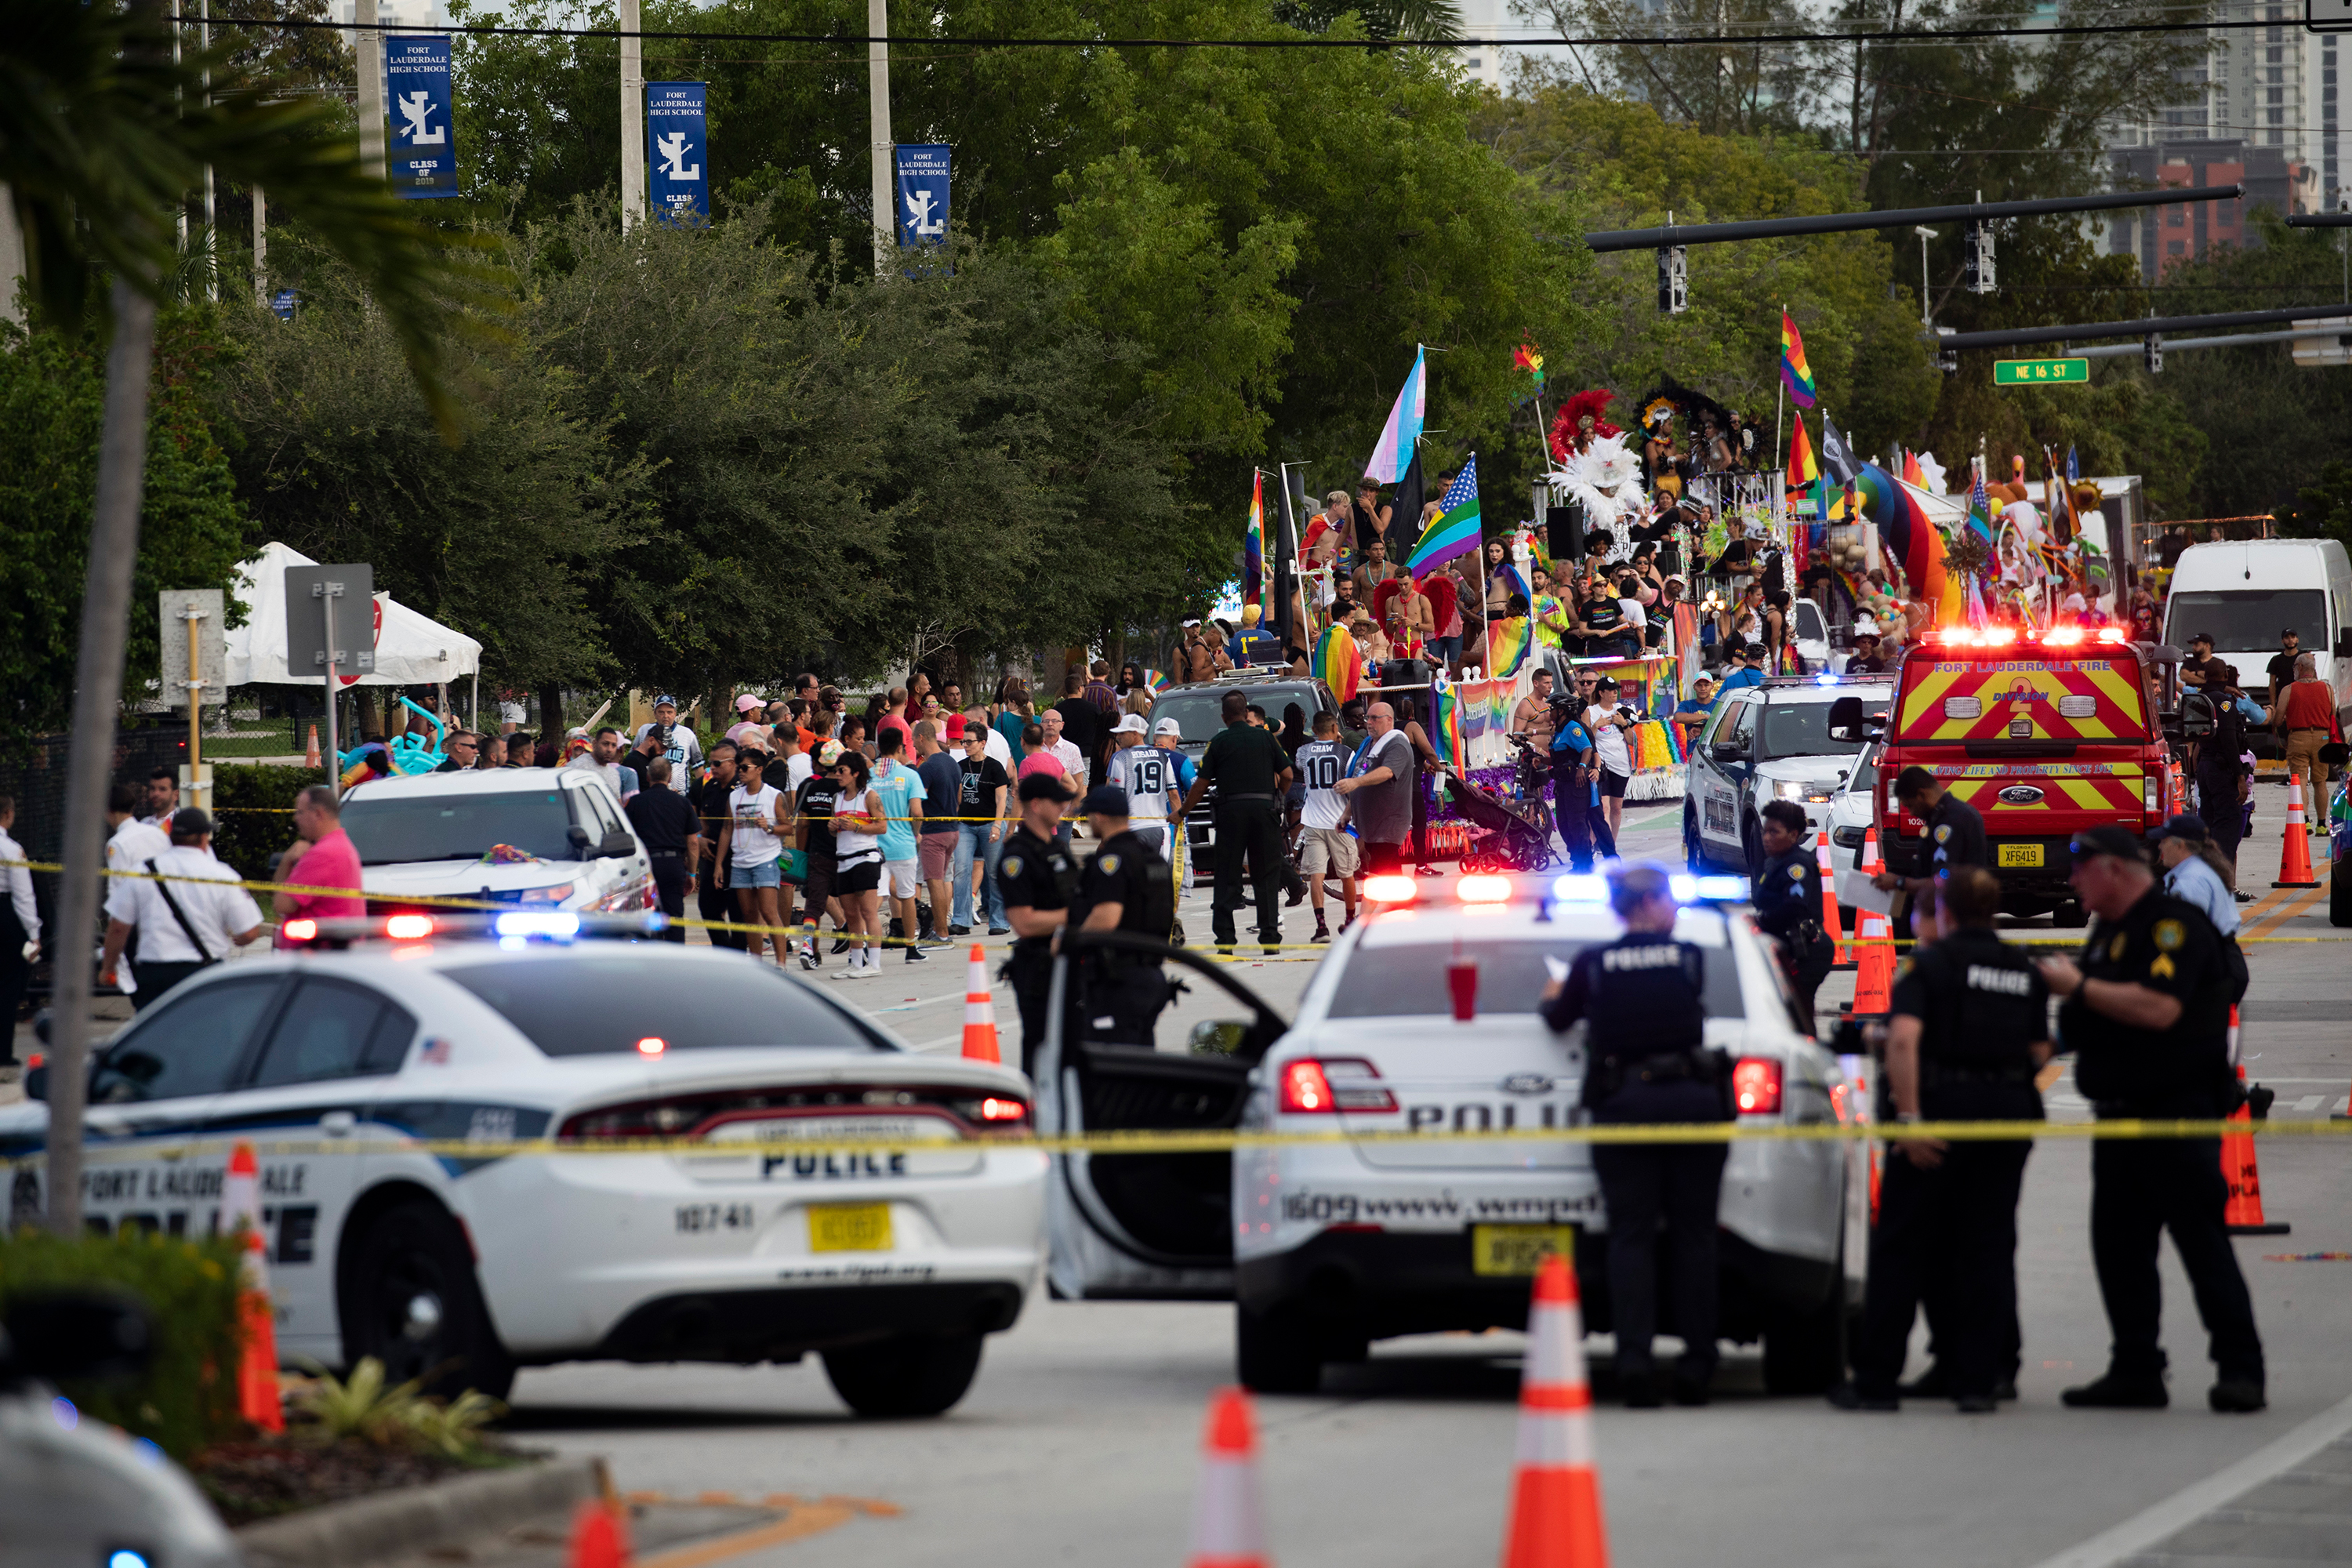 'Tragic accident' leaves 1 dead when a truck hit pedestrians at a Florida Pride parade